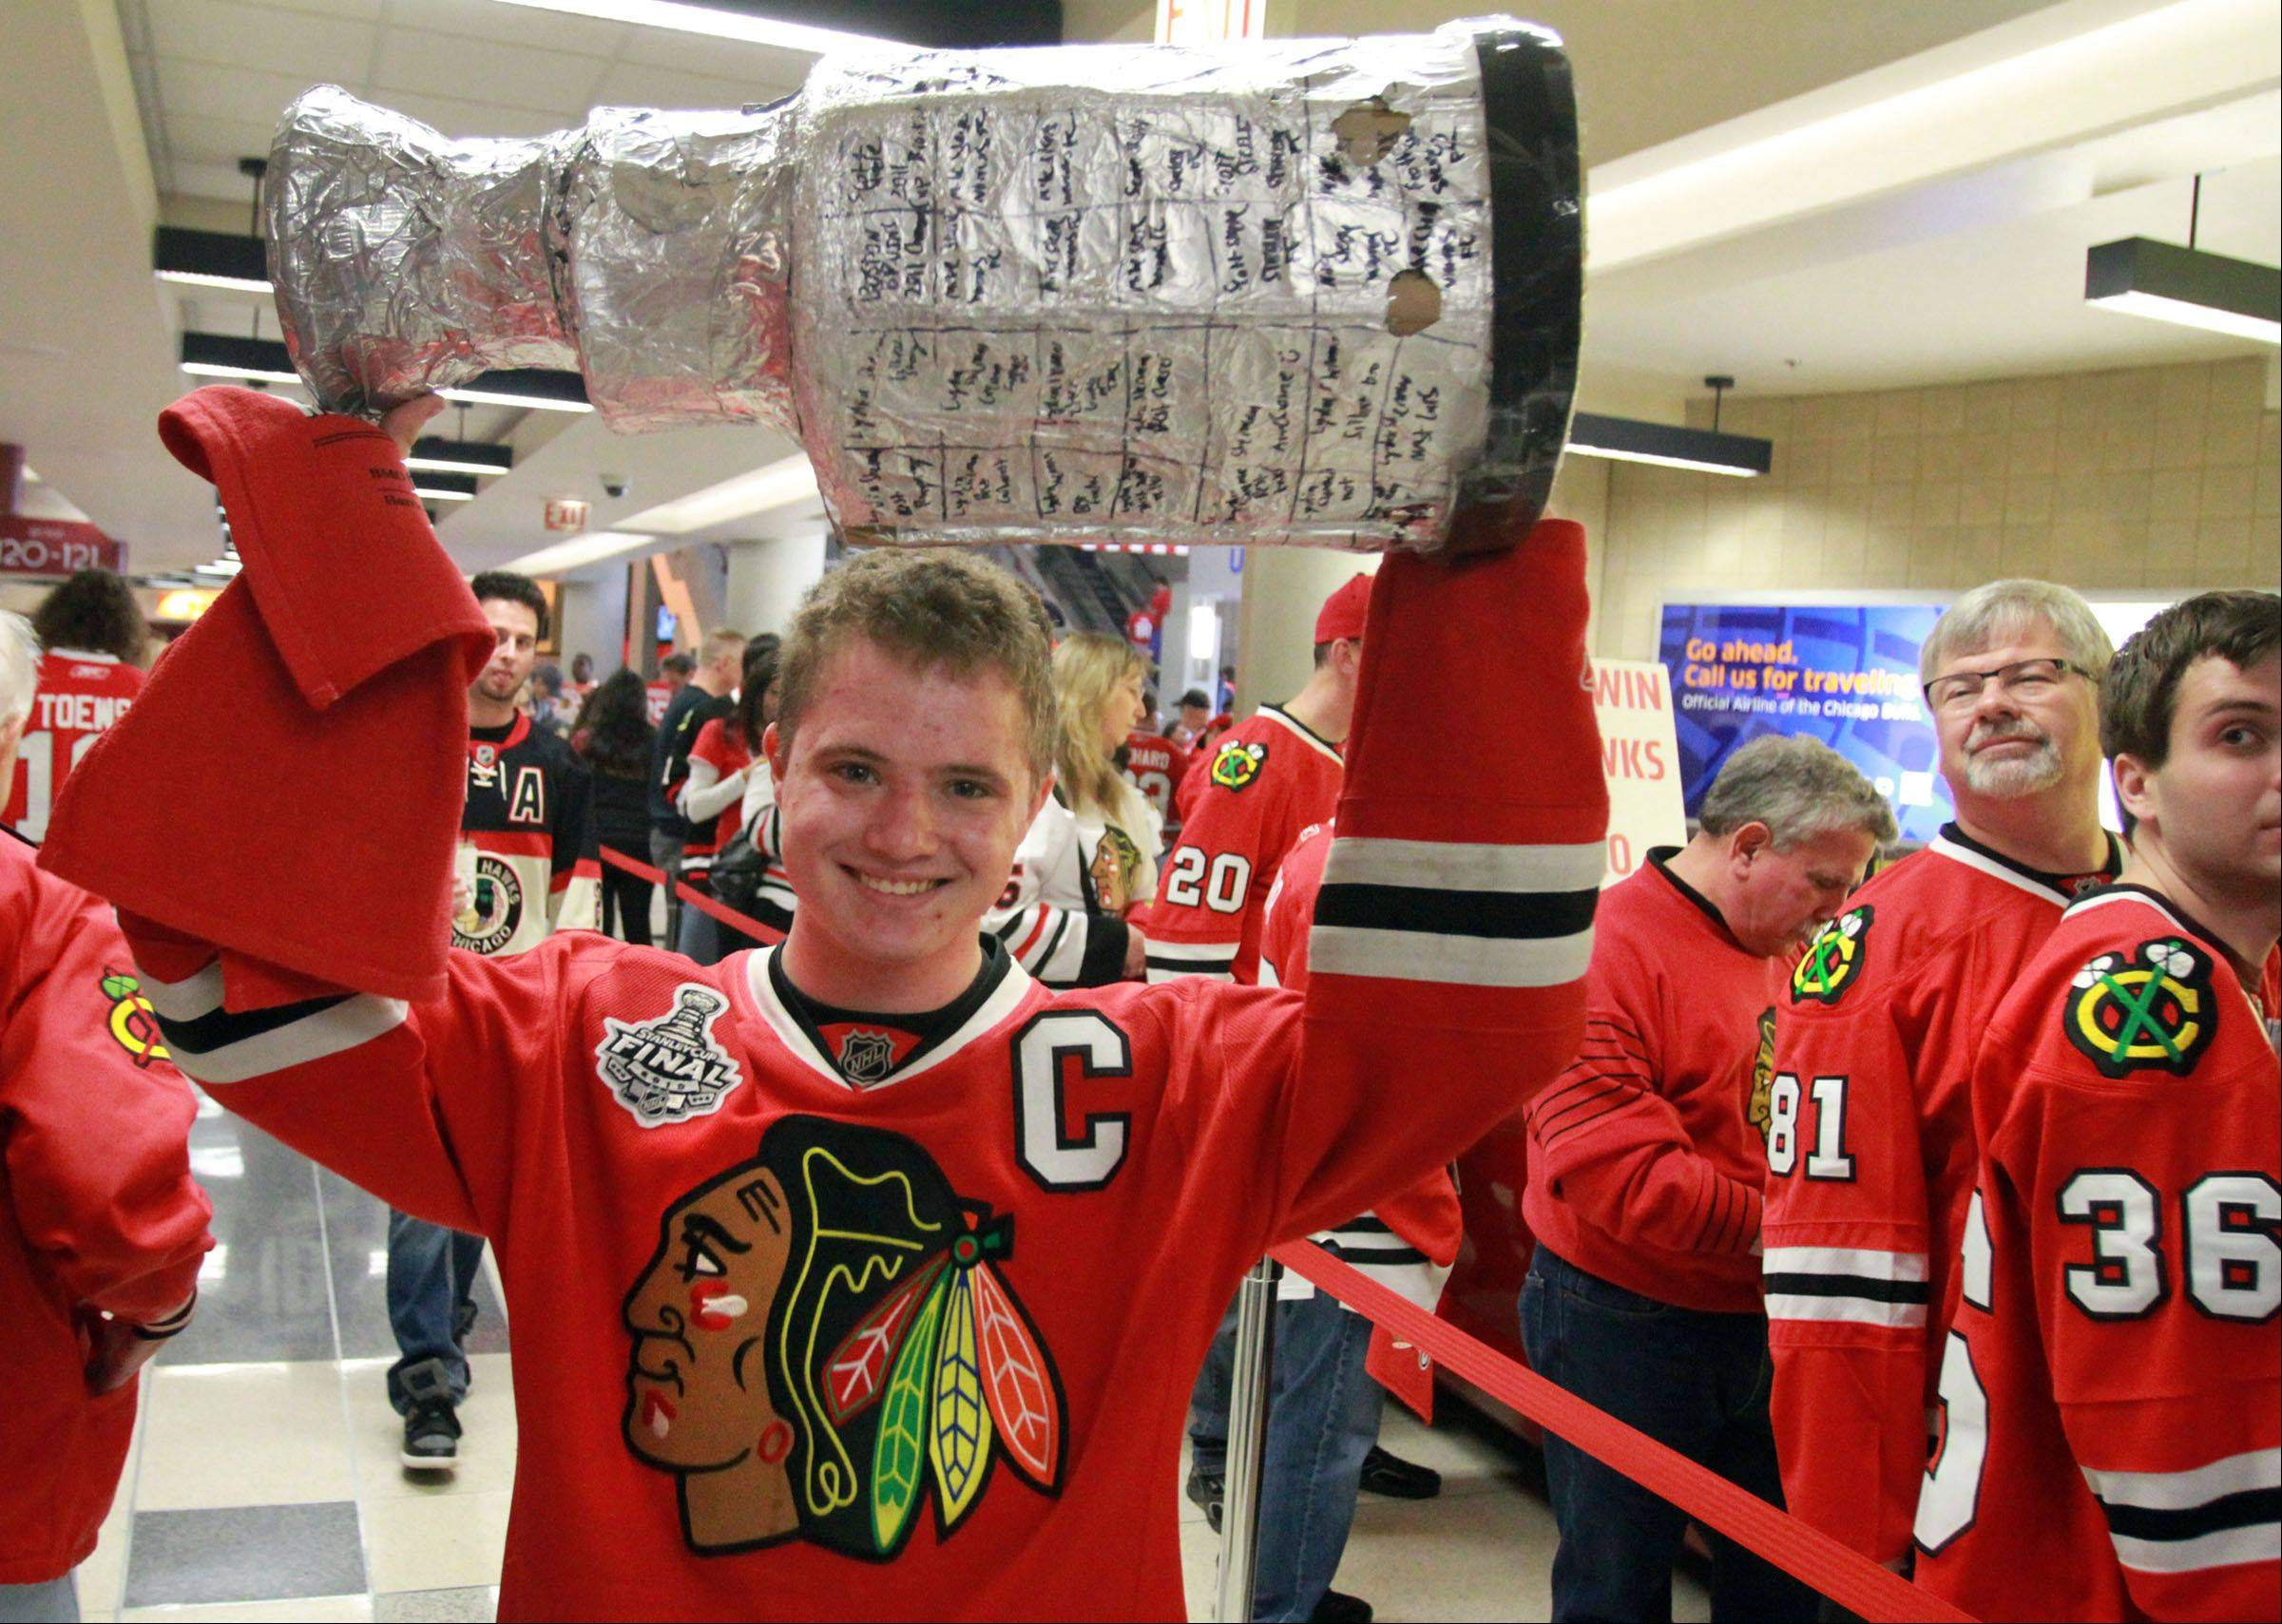 Michael Steele of Naperville brought a homemade replica of the Stanley Cup to the Blackhawks' second game against the Detroit Red Wings.